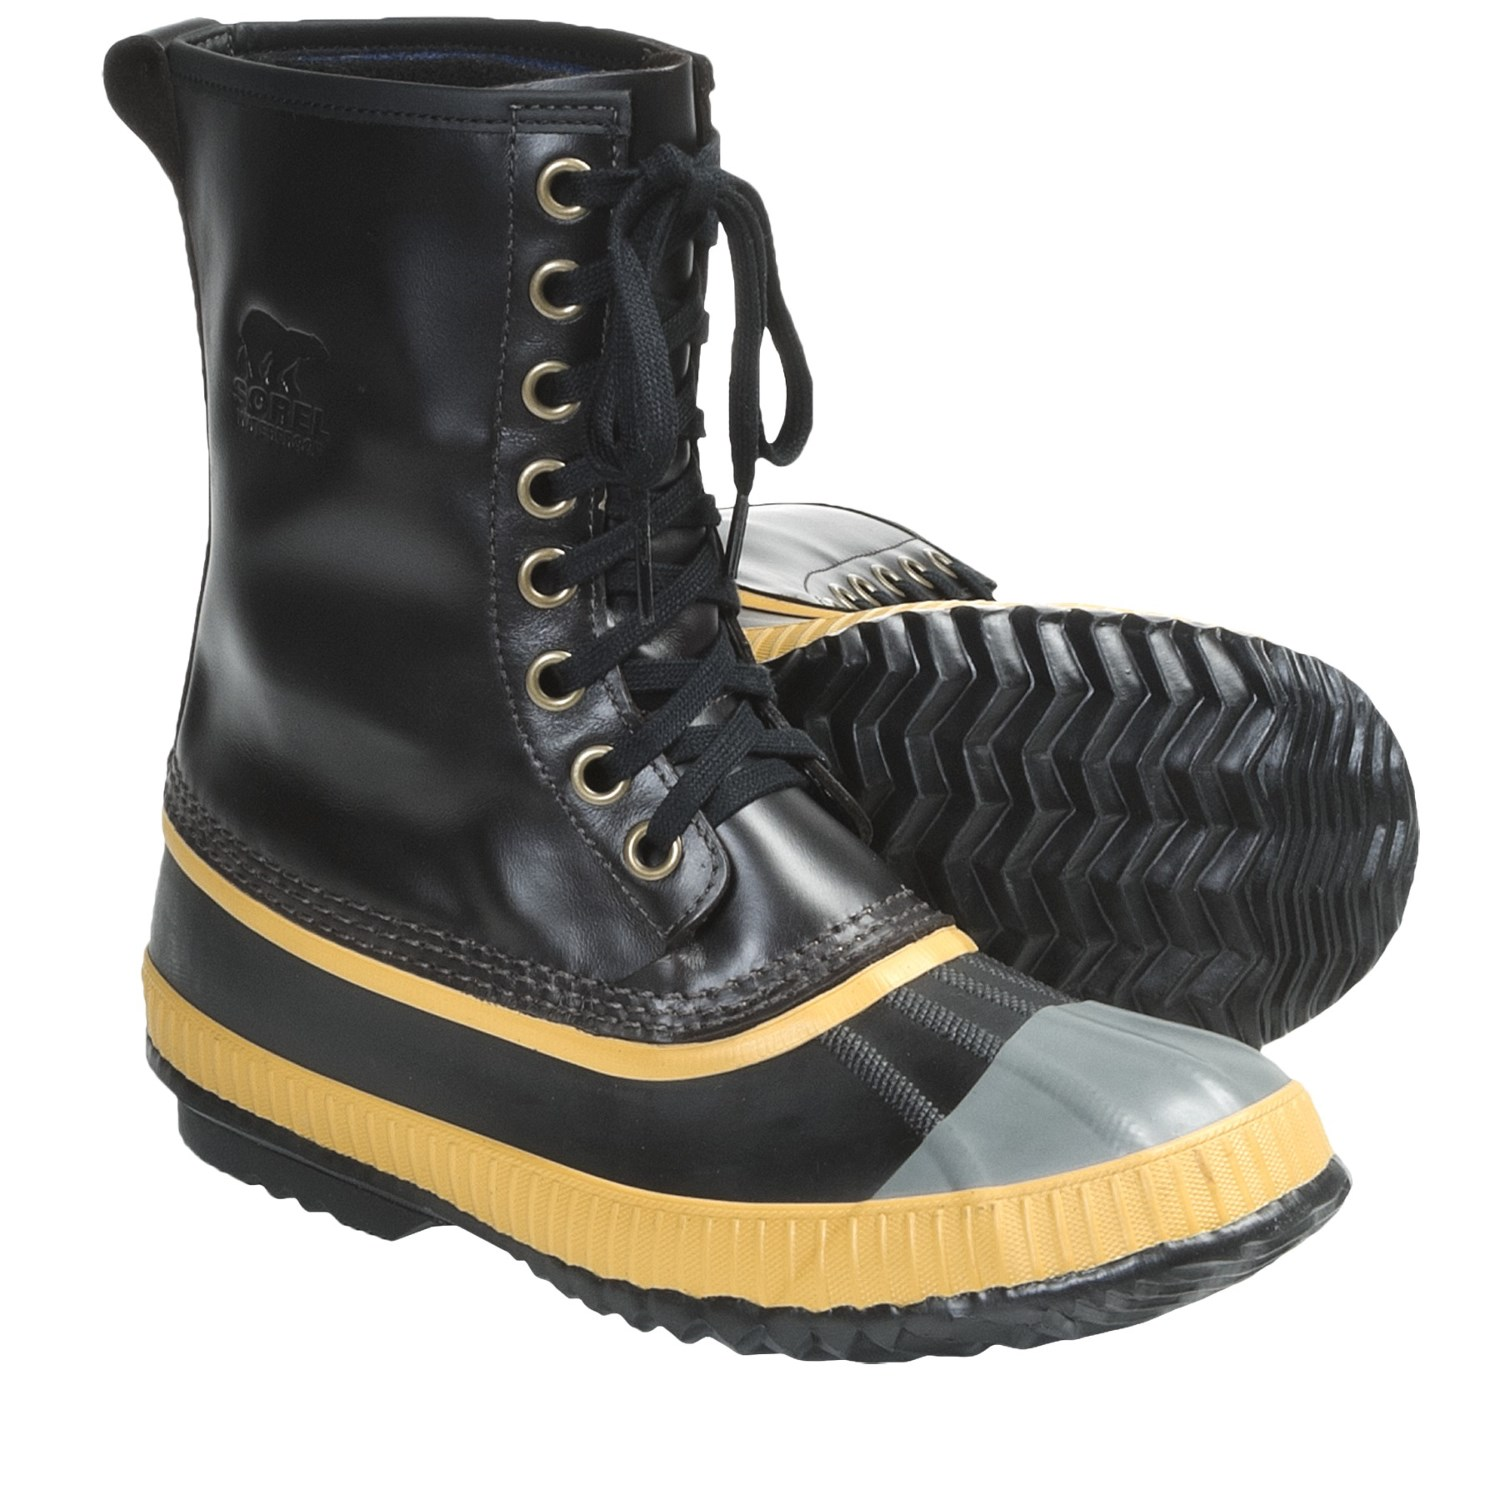 Men's Waterproof Snow Boots Clearance | Planetary Skin Institute